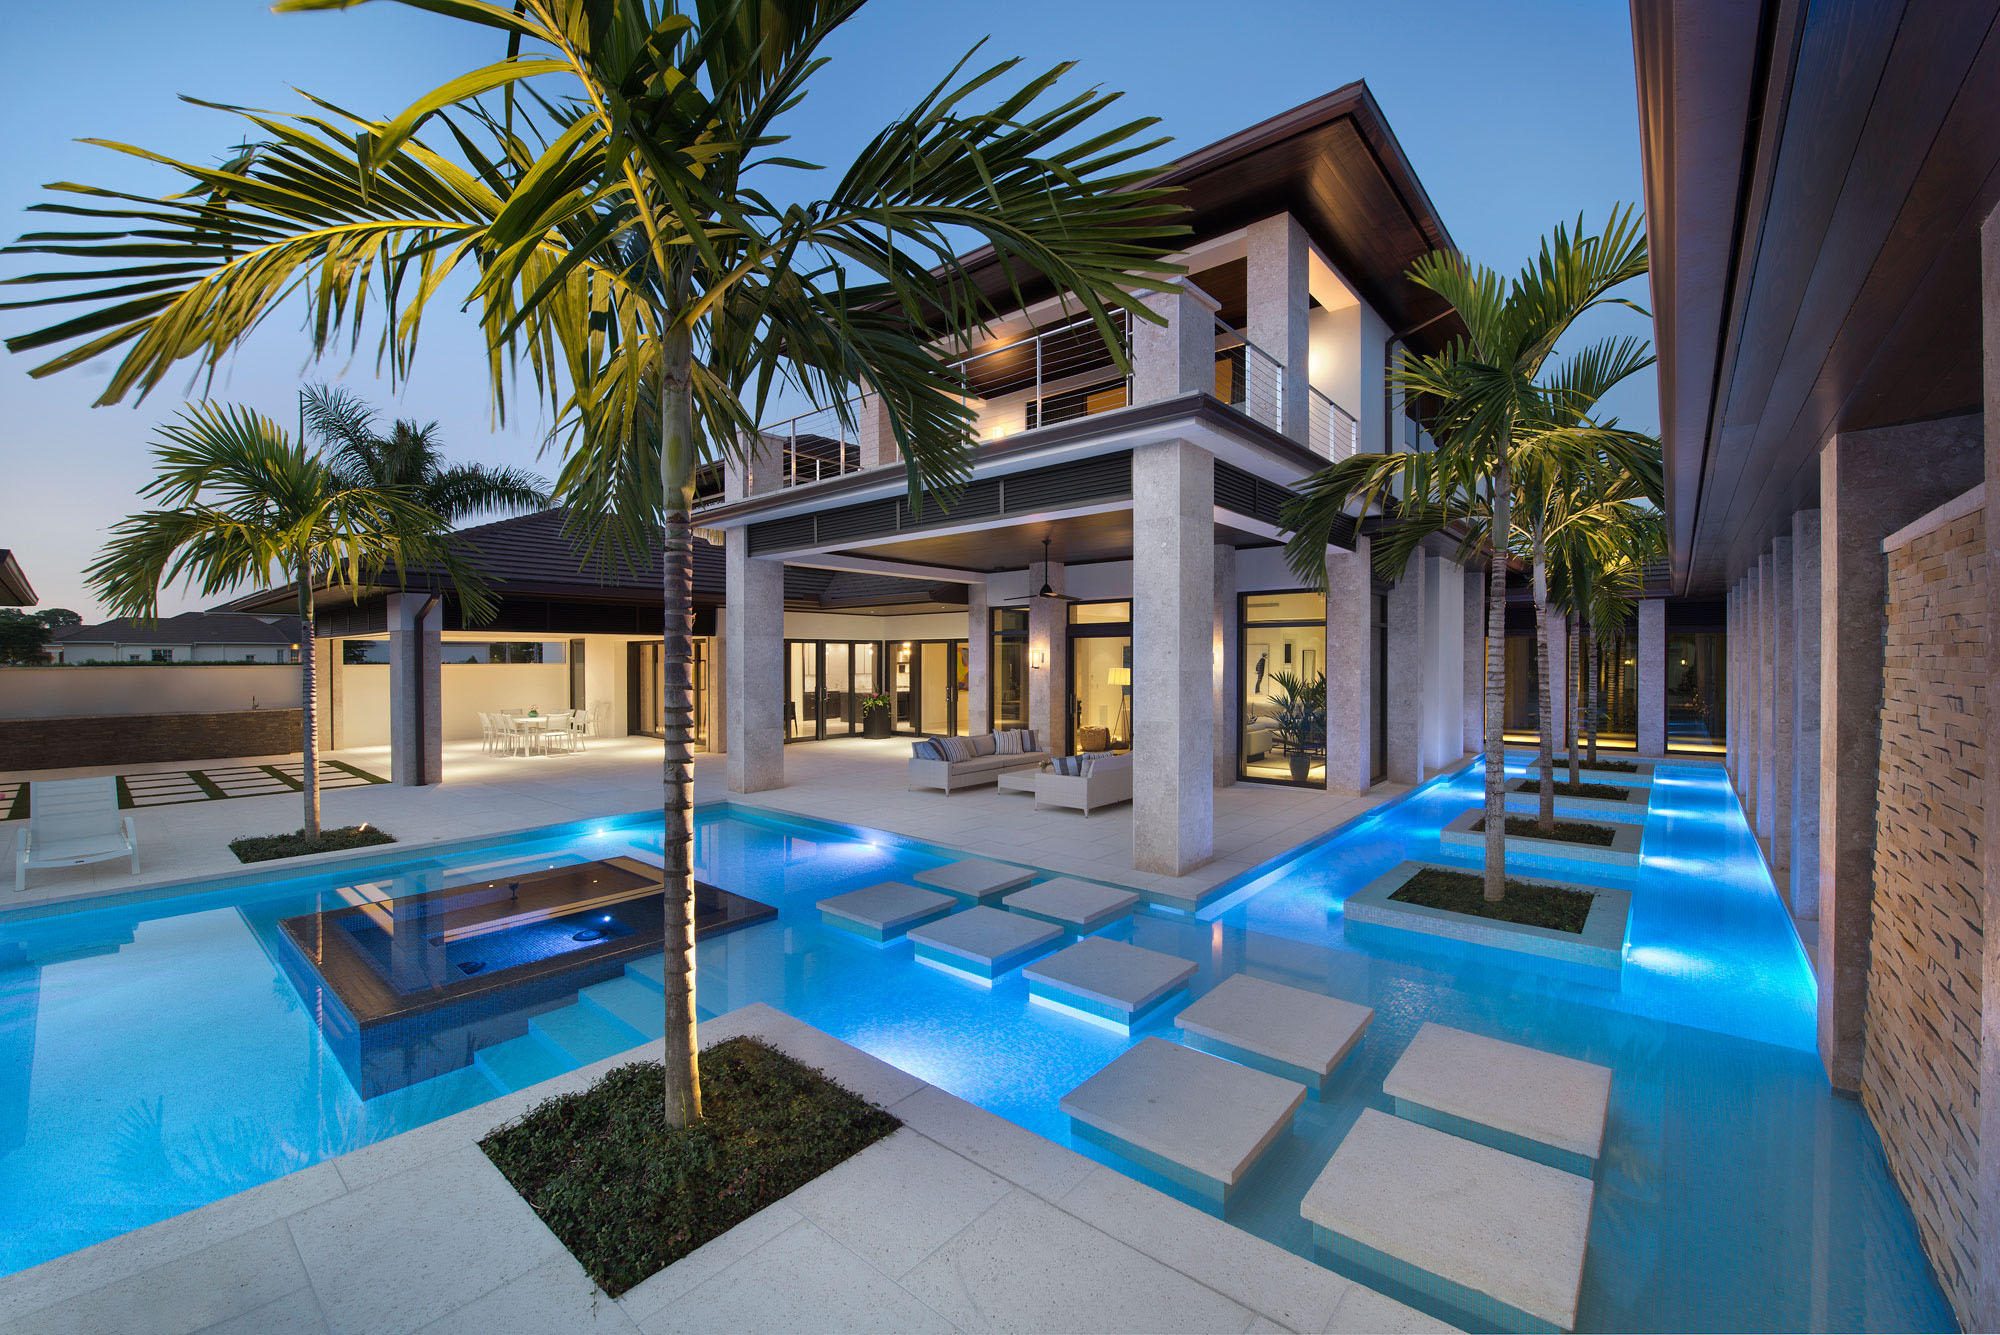 Contemporary Dream Home This Stunning Contemporary Luxury Home In Naples ...